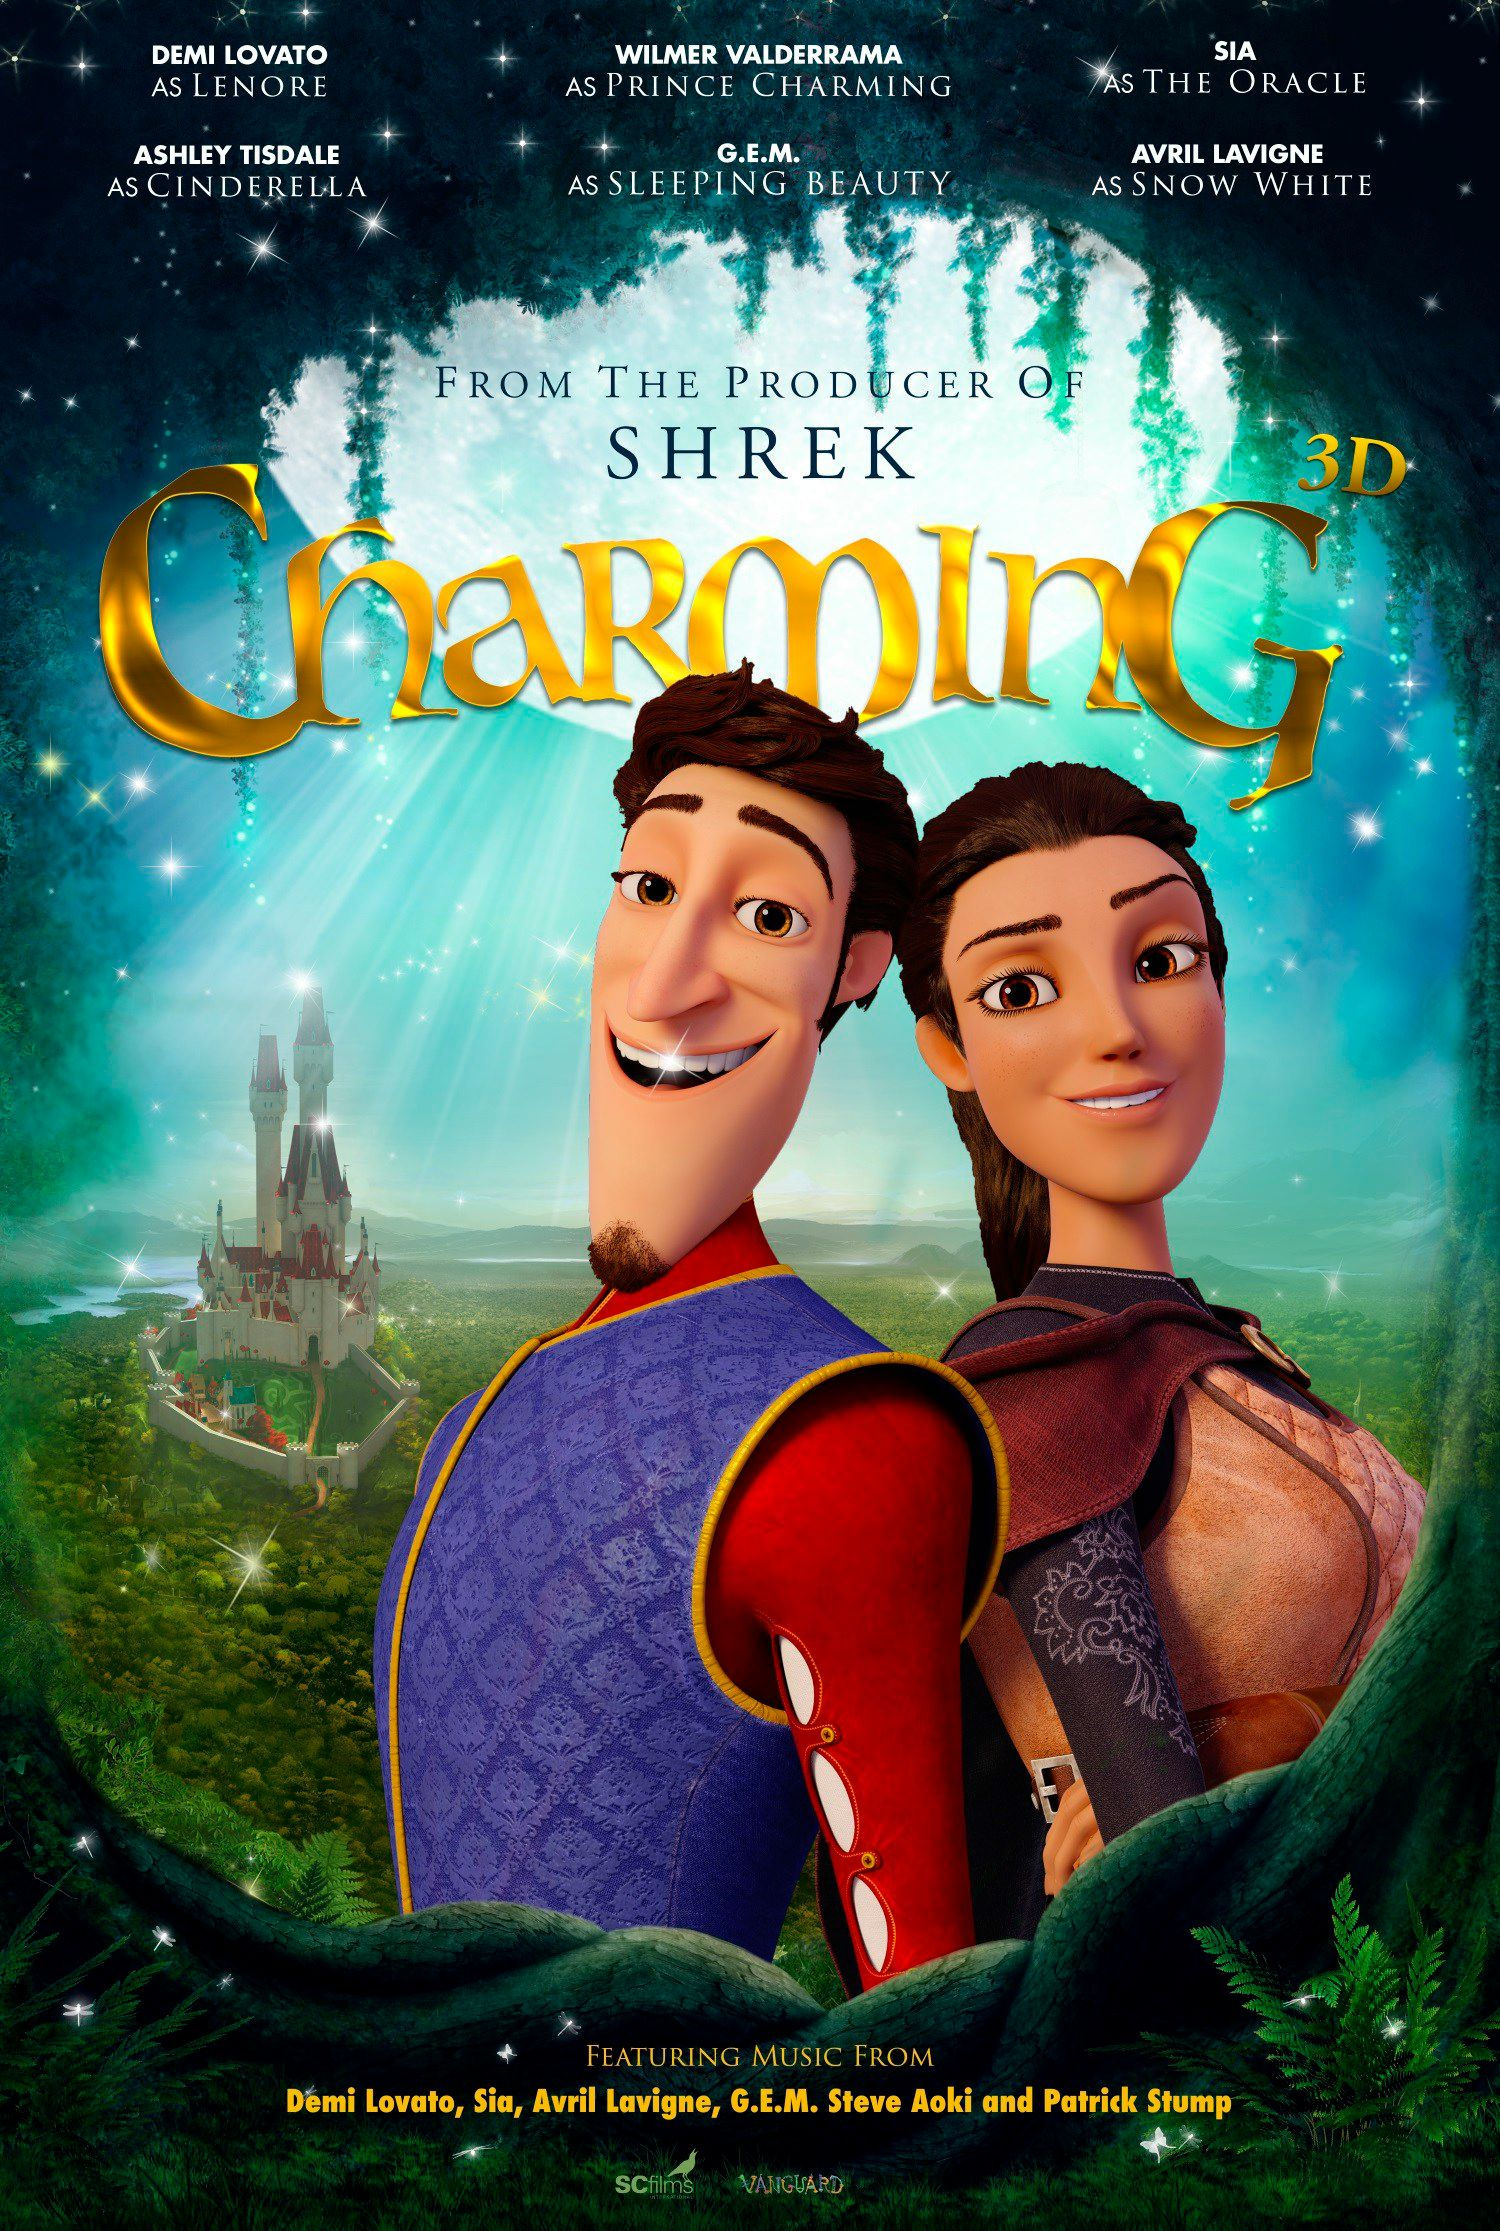 Charming Movie Review